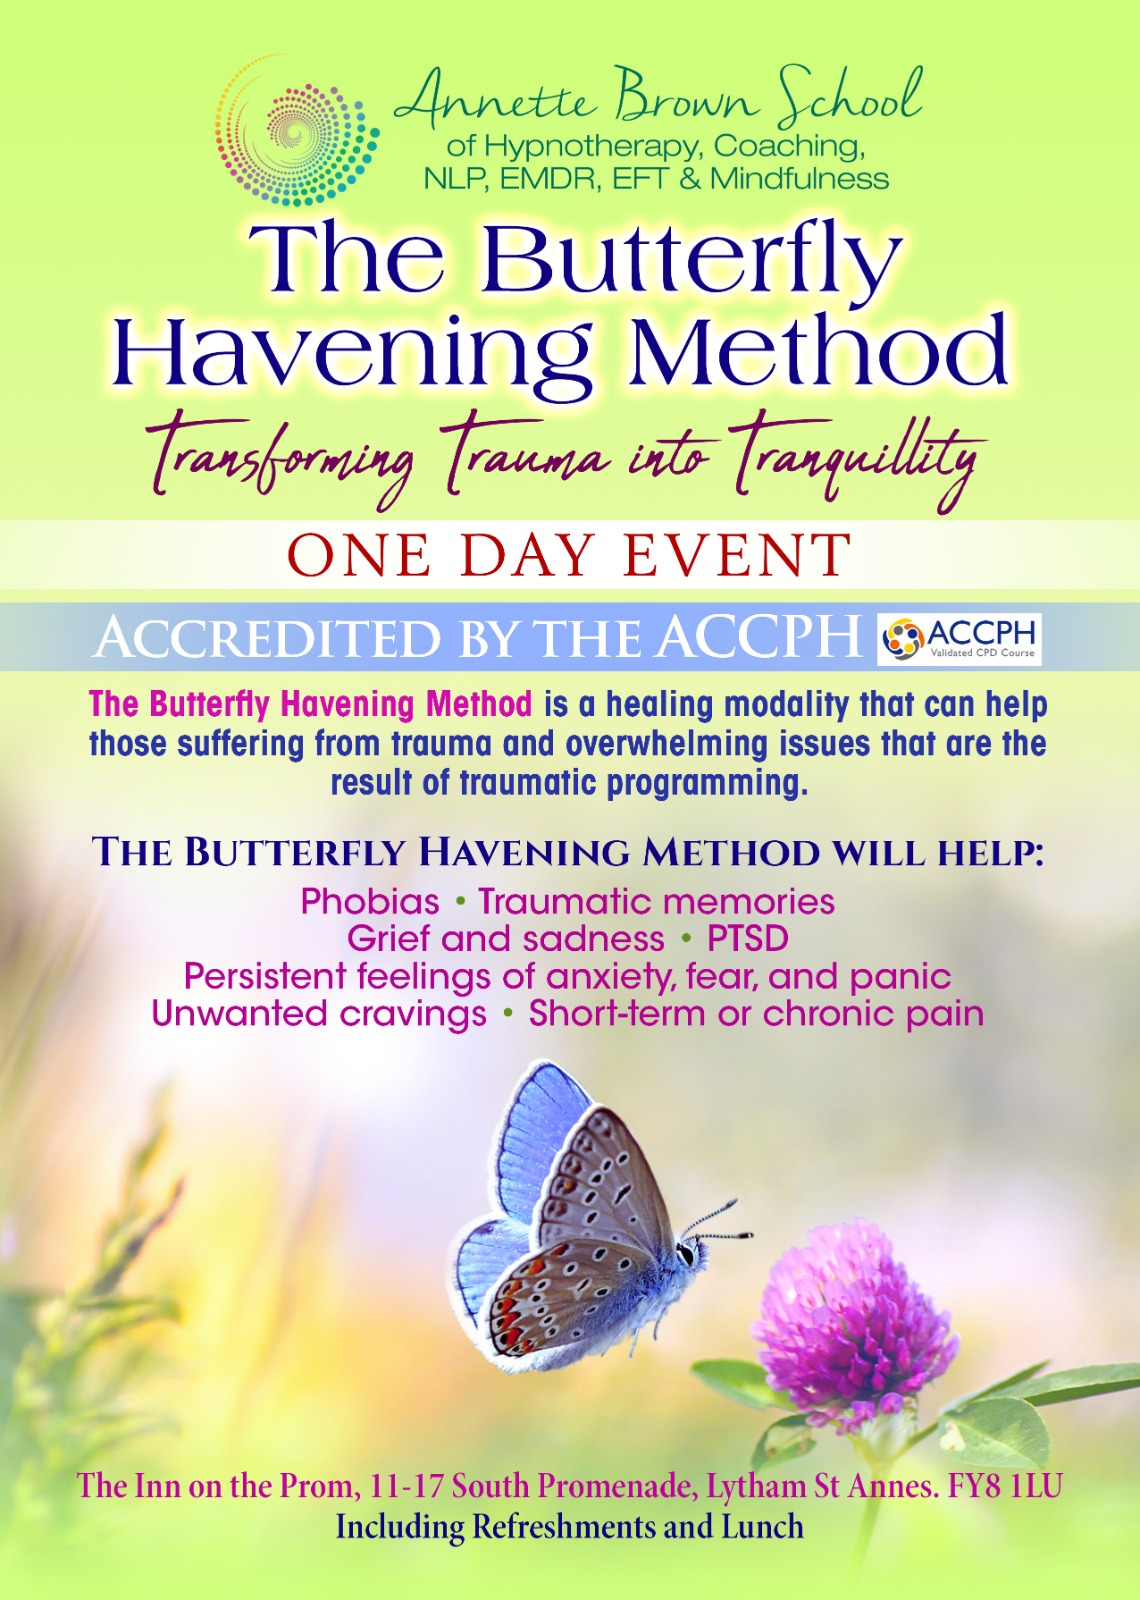 The Butterfly Havening Method